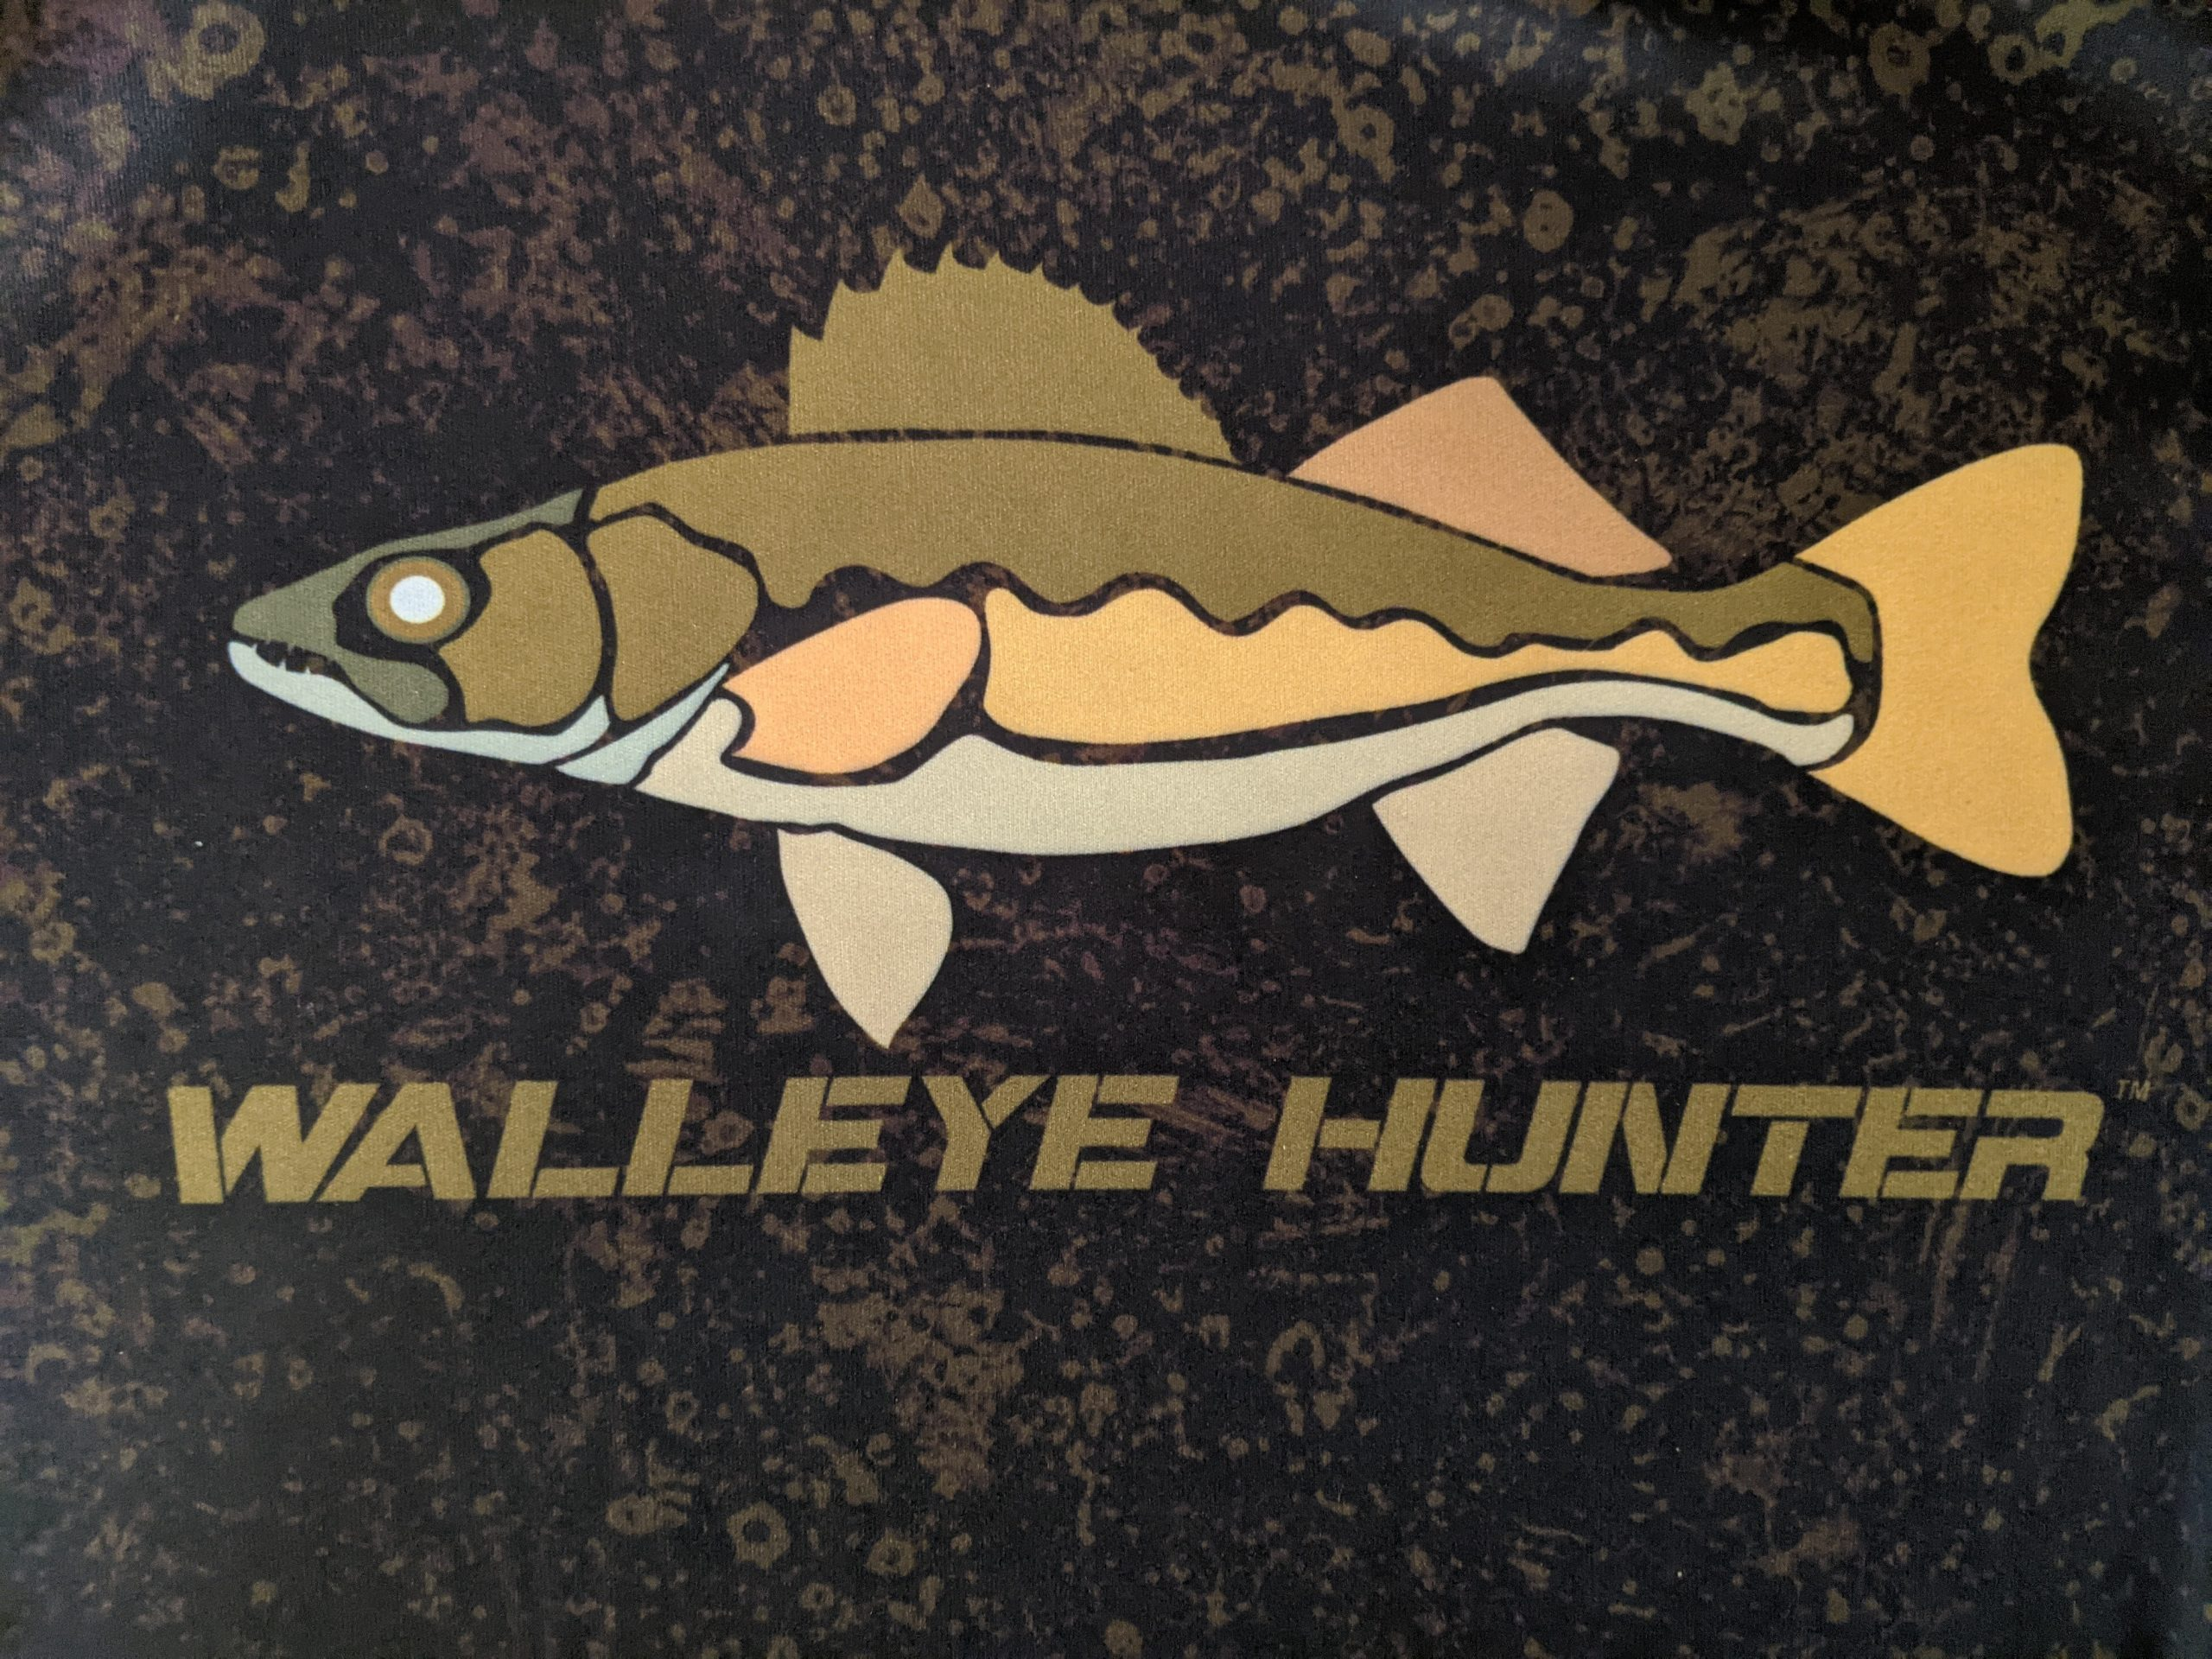 Maumee River report-And spring fishing regulations- February 25,2021